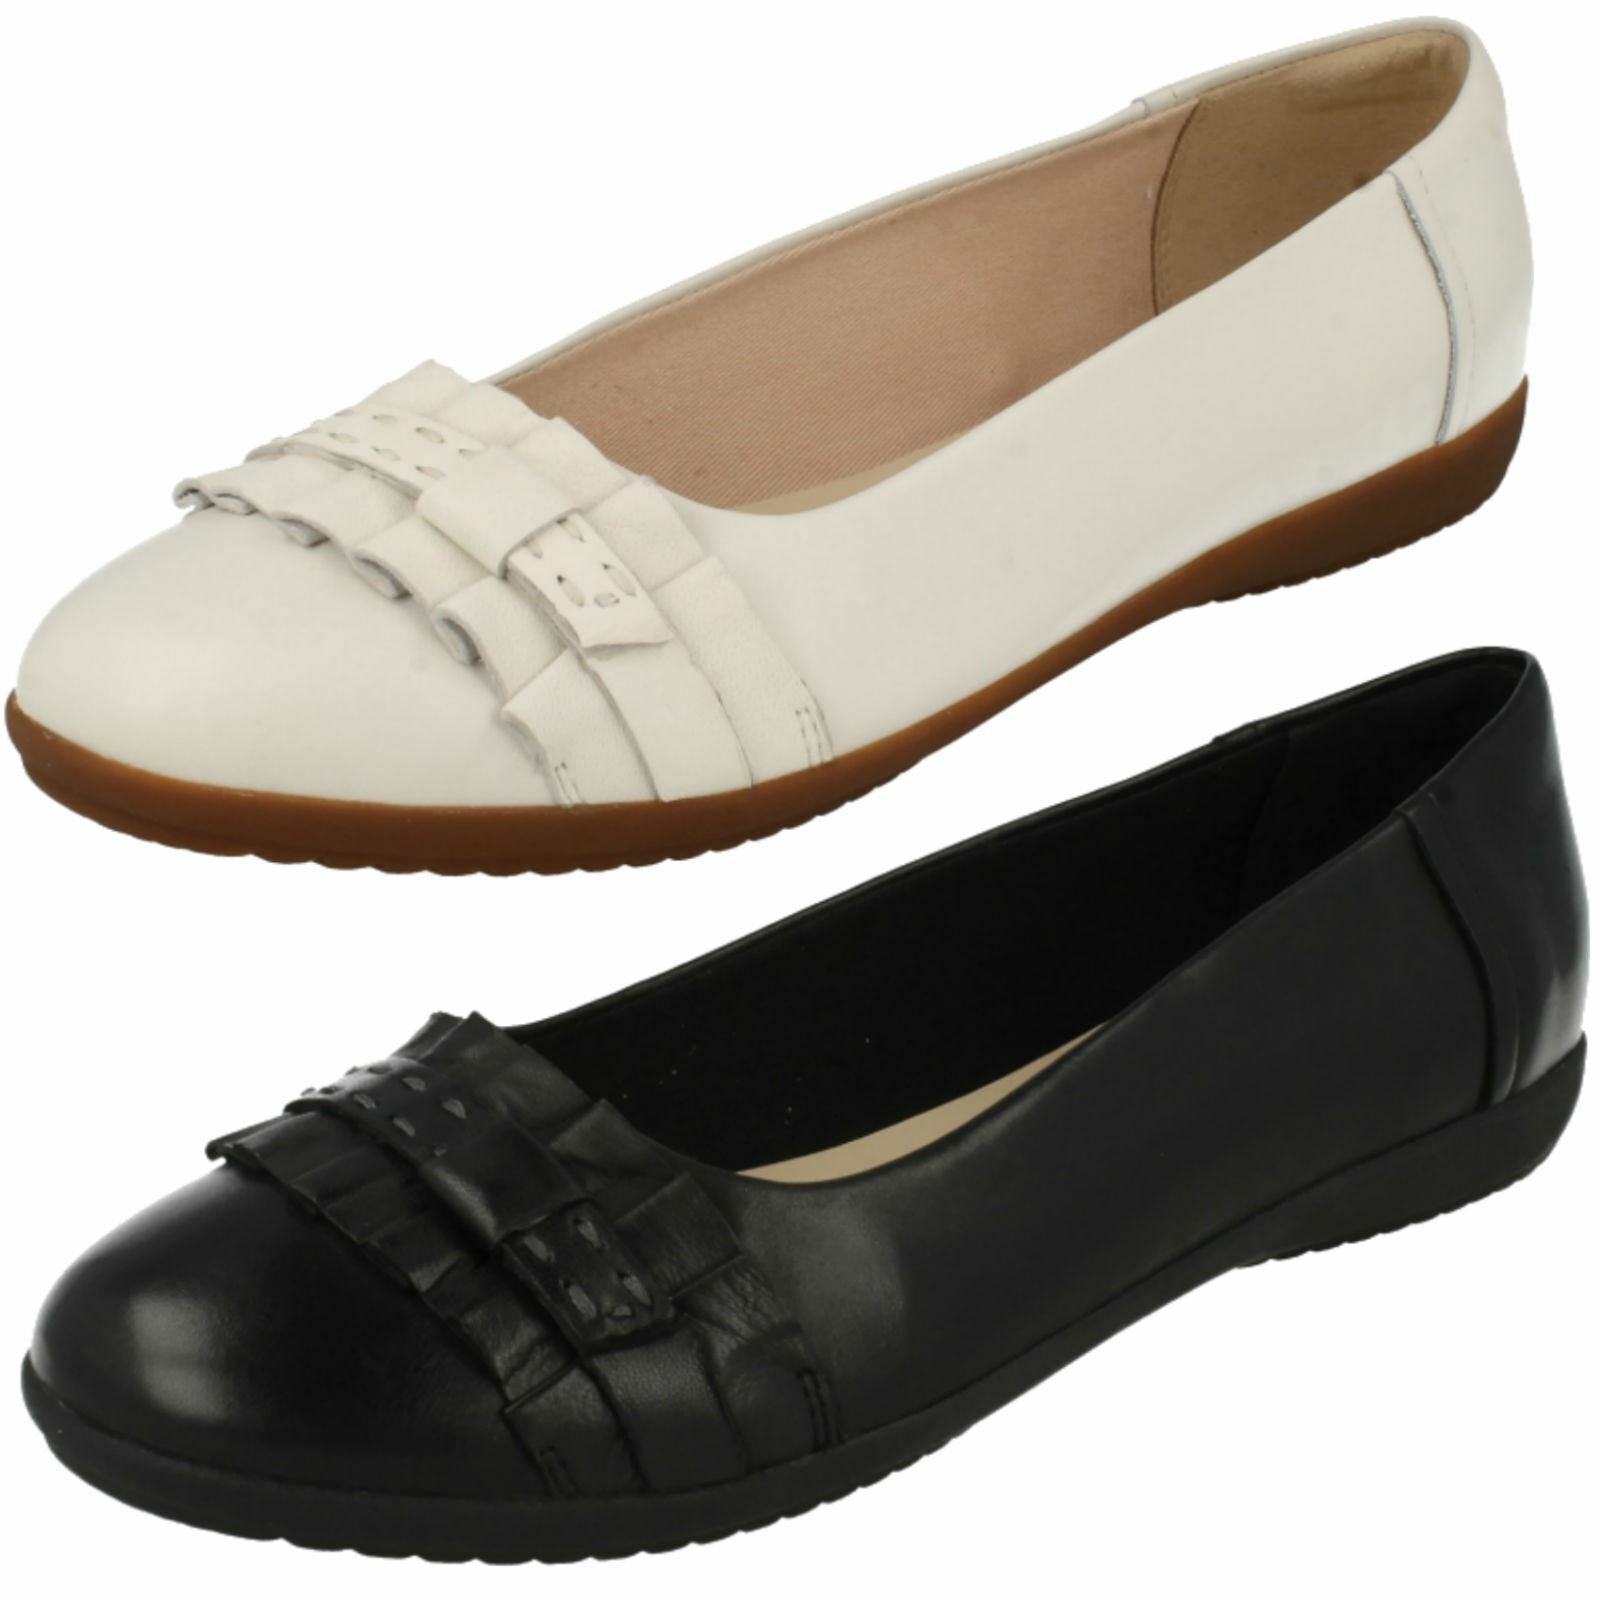 Ladies Clarks Feya Island Black Or White Leather Smart Slip On Shoes